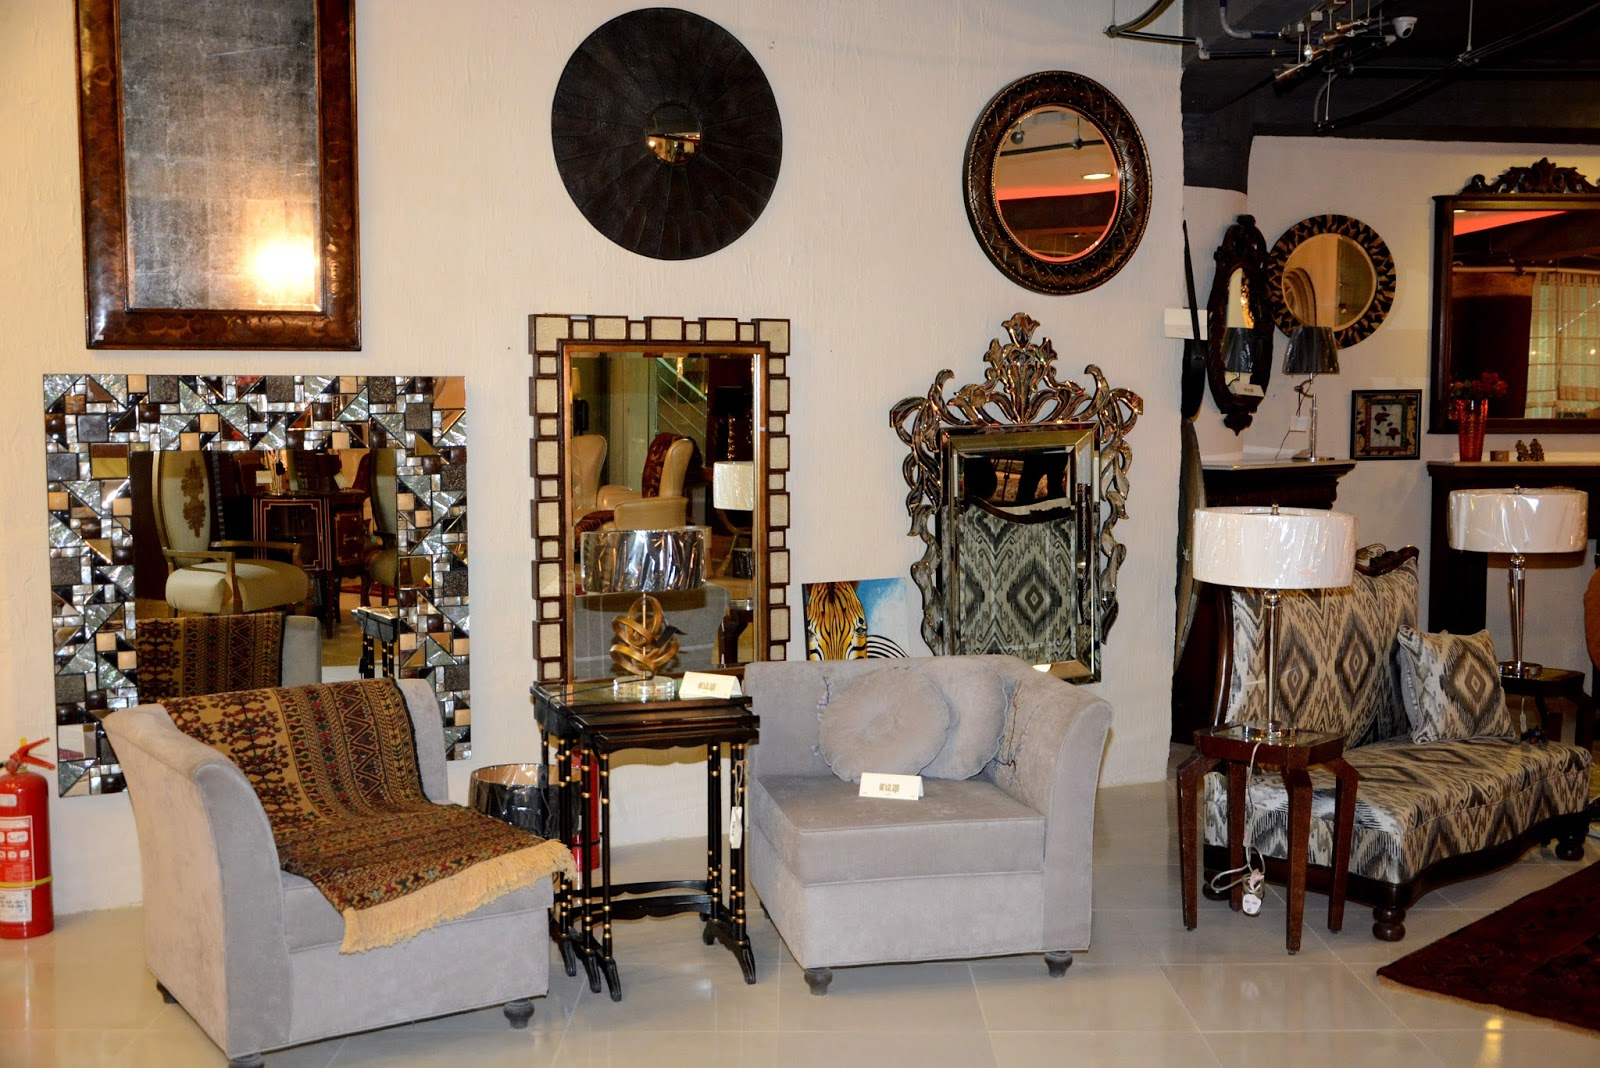 Launch of designers e 39 talage furniture museum in islamabad sparkling palette blog for Furniture stores with interior designers